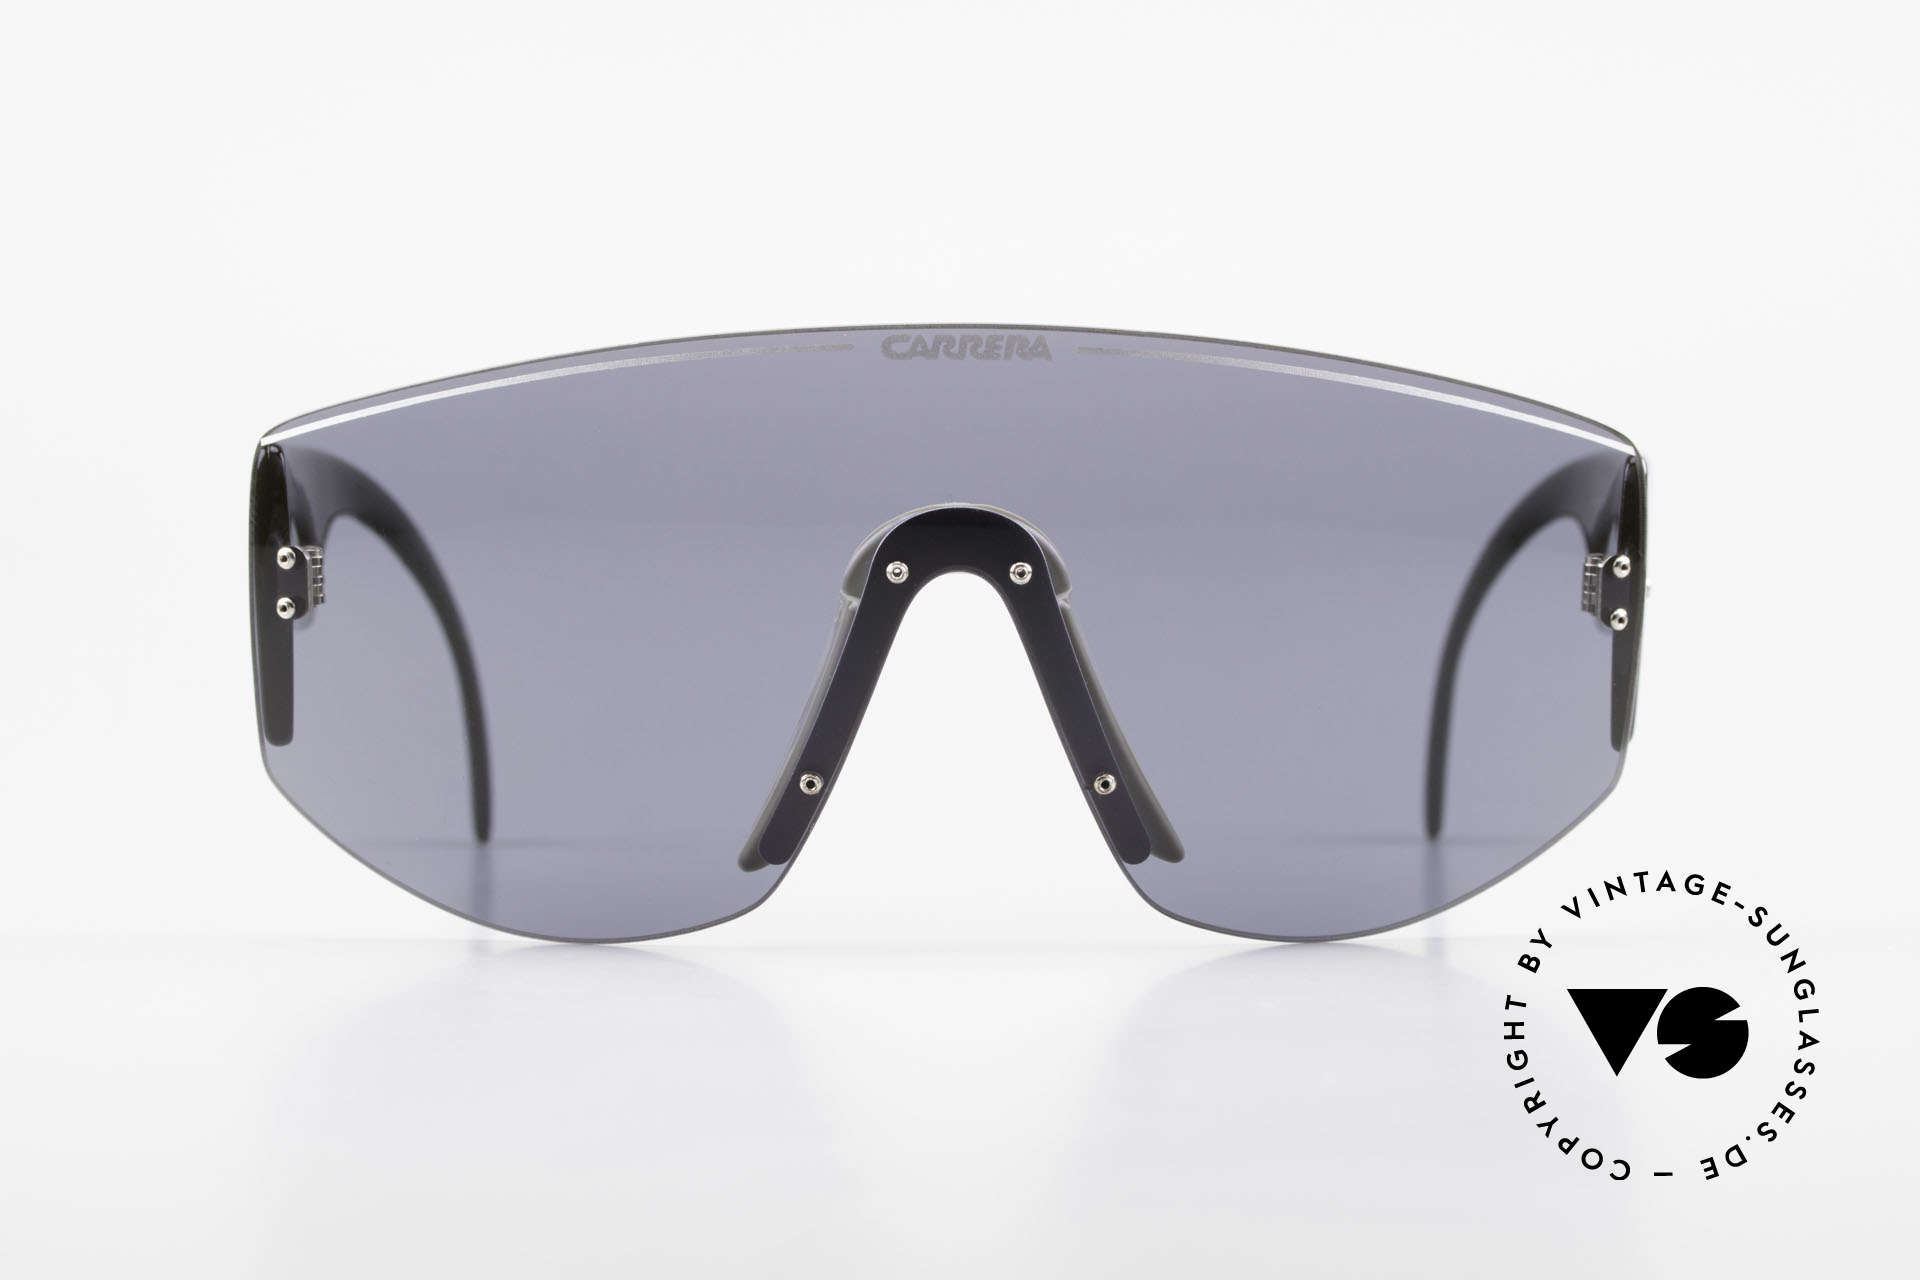 Carrera 5414 90's Sunglasses Sports Shades, rare model with one large single lens (panorama view), Made for Men